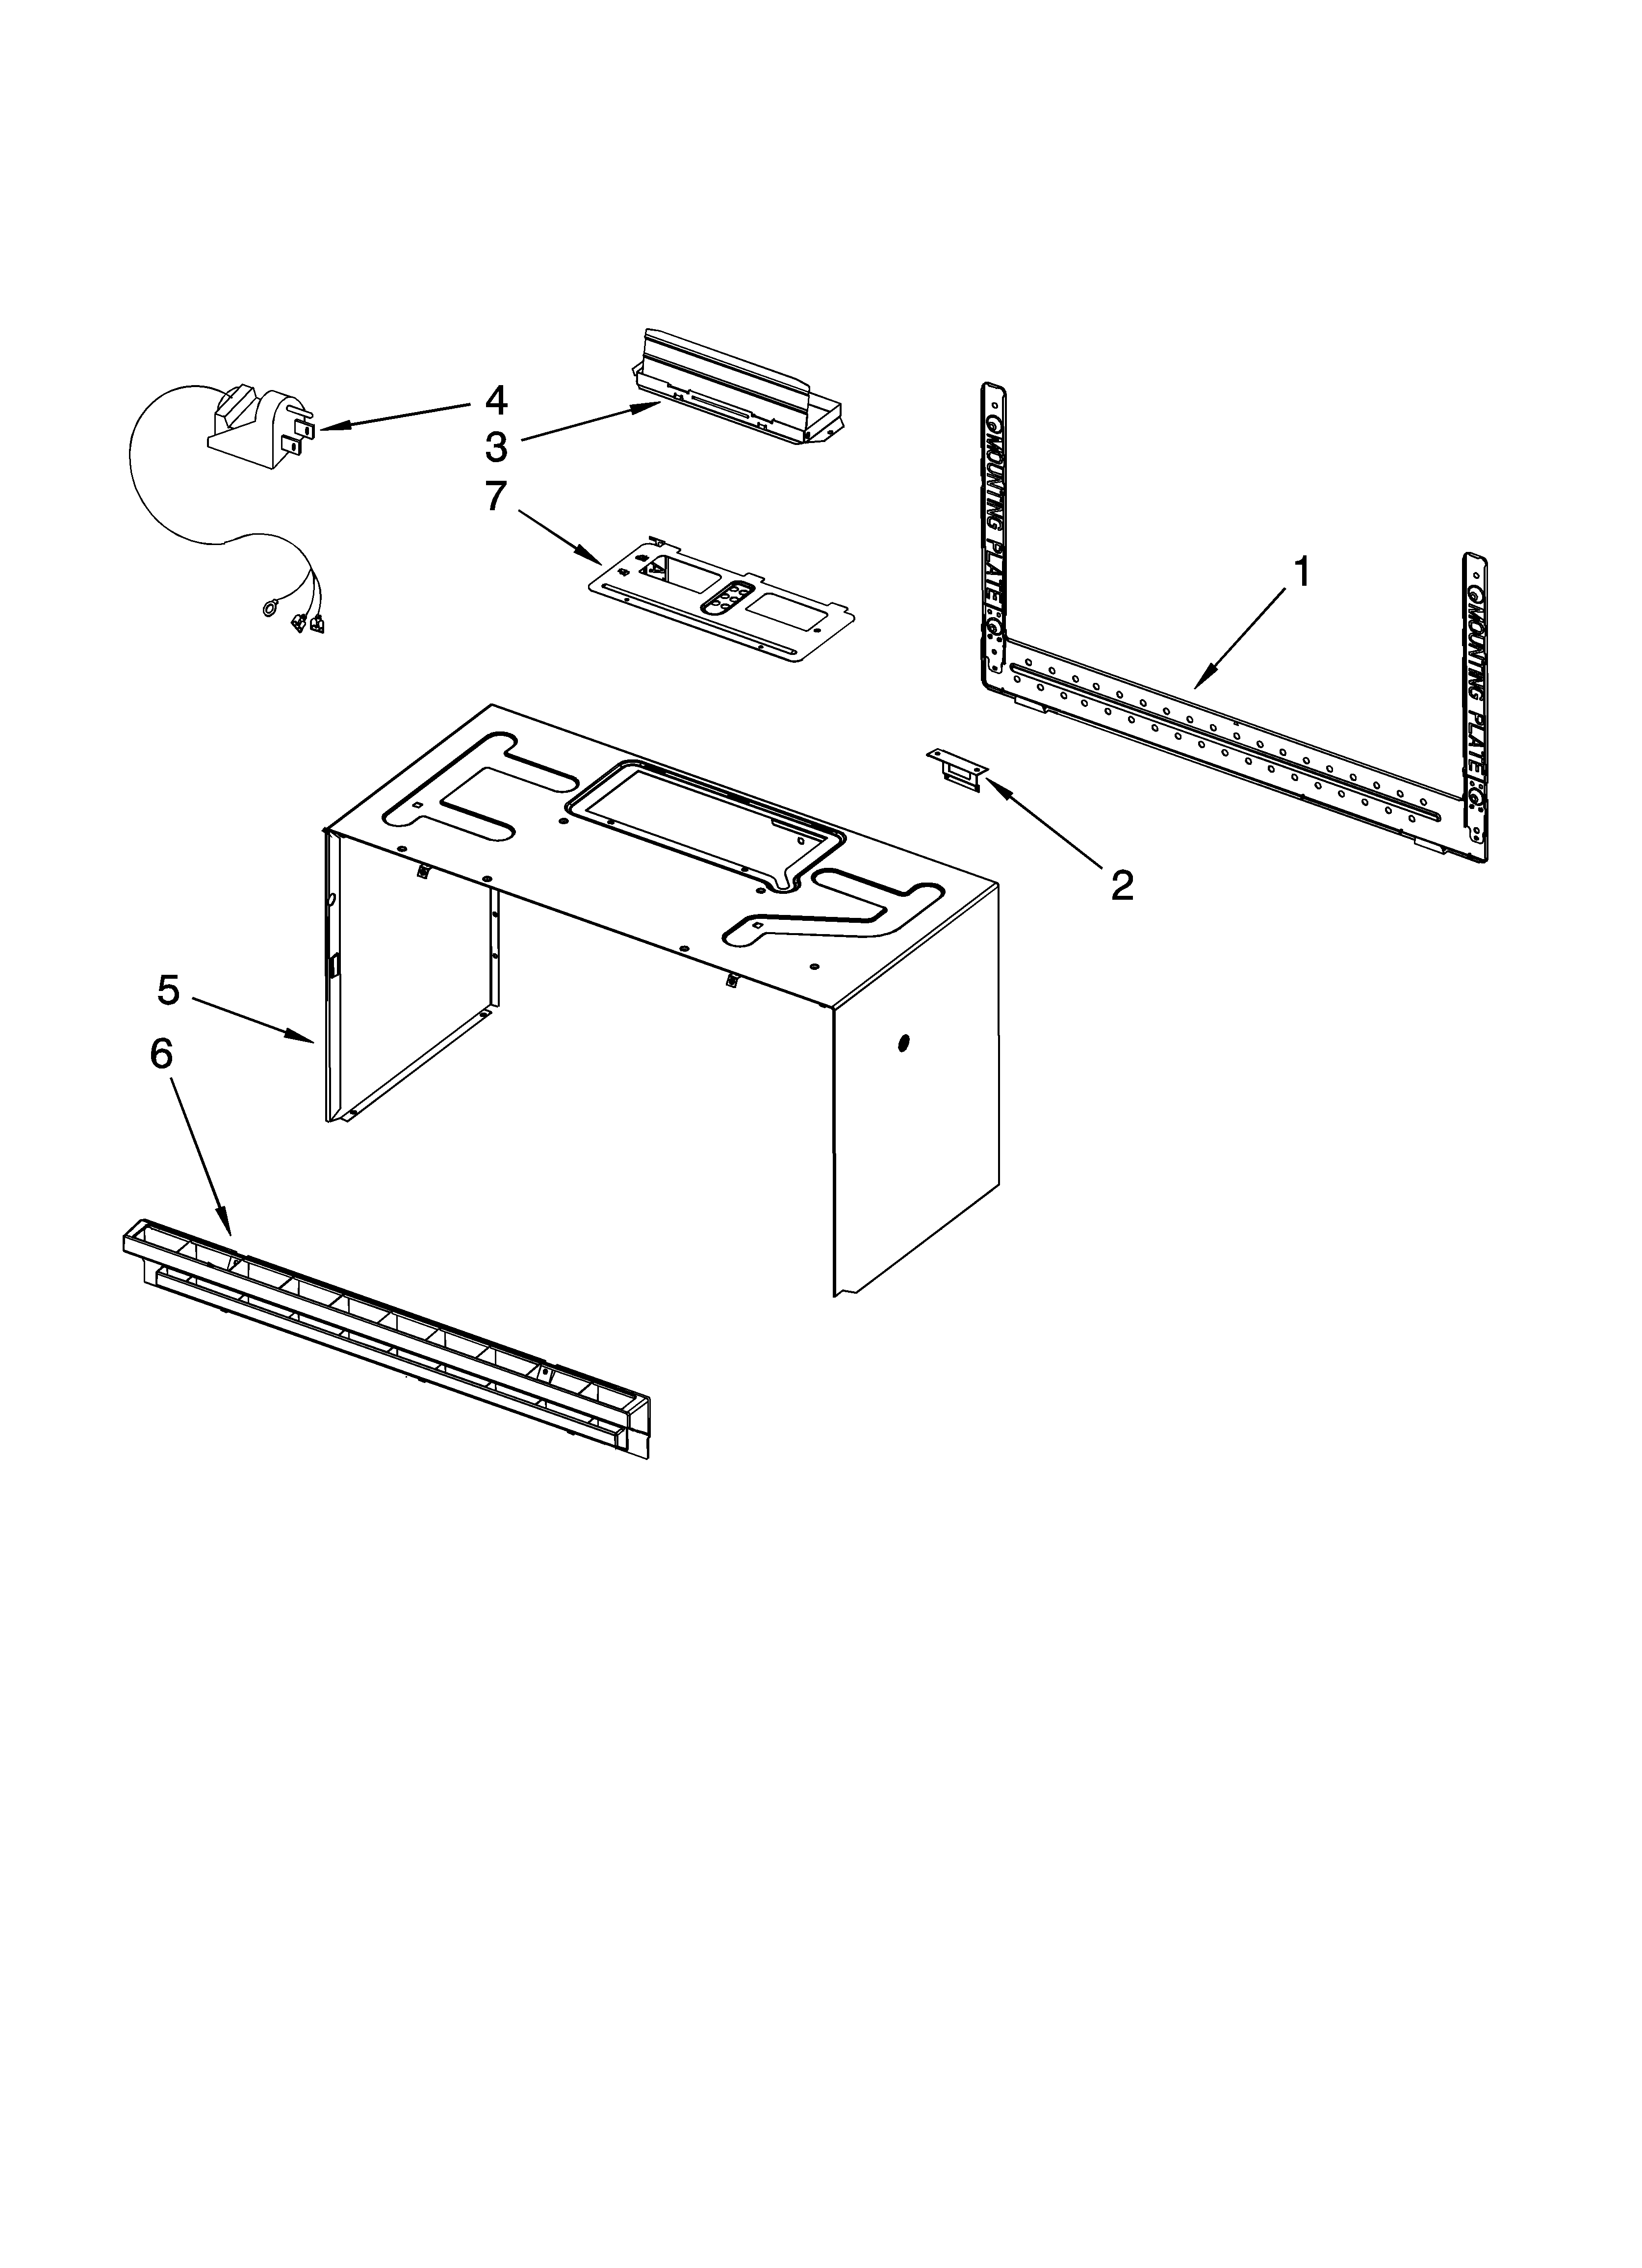 Whirlpool YMH2175XSS1 cabinet and installation parts diagram